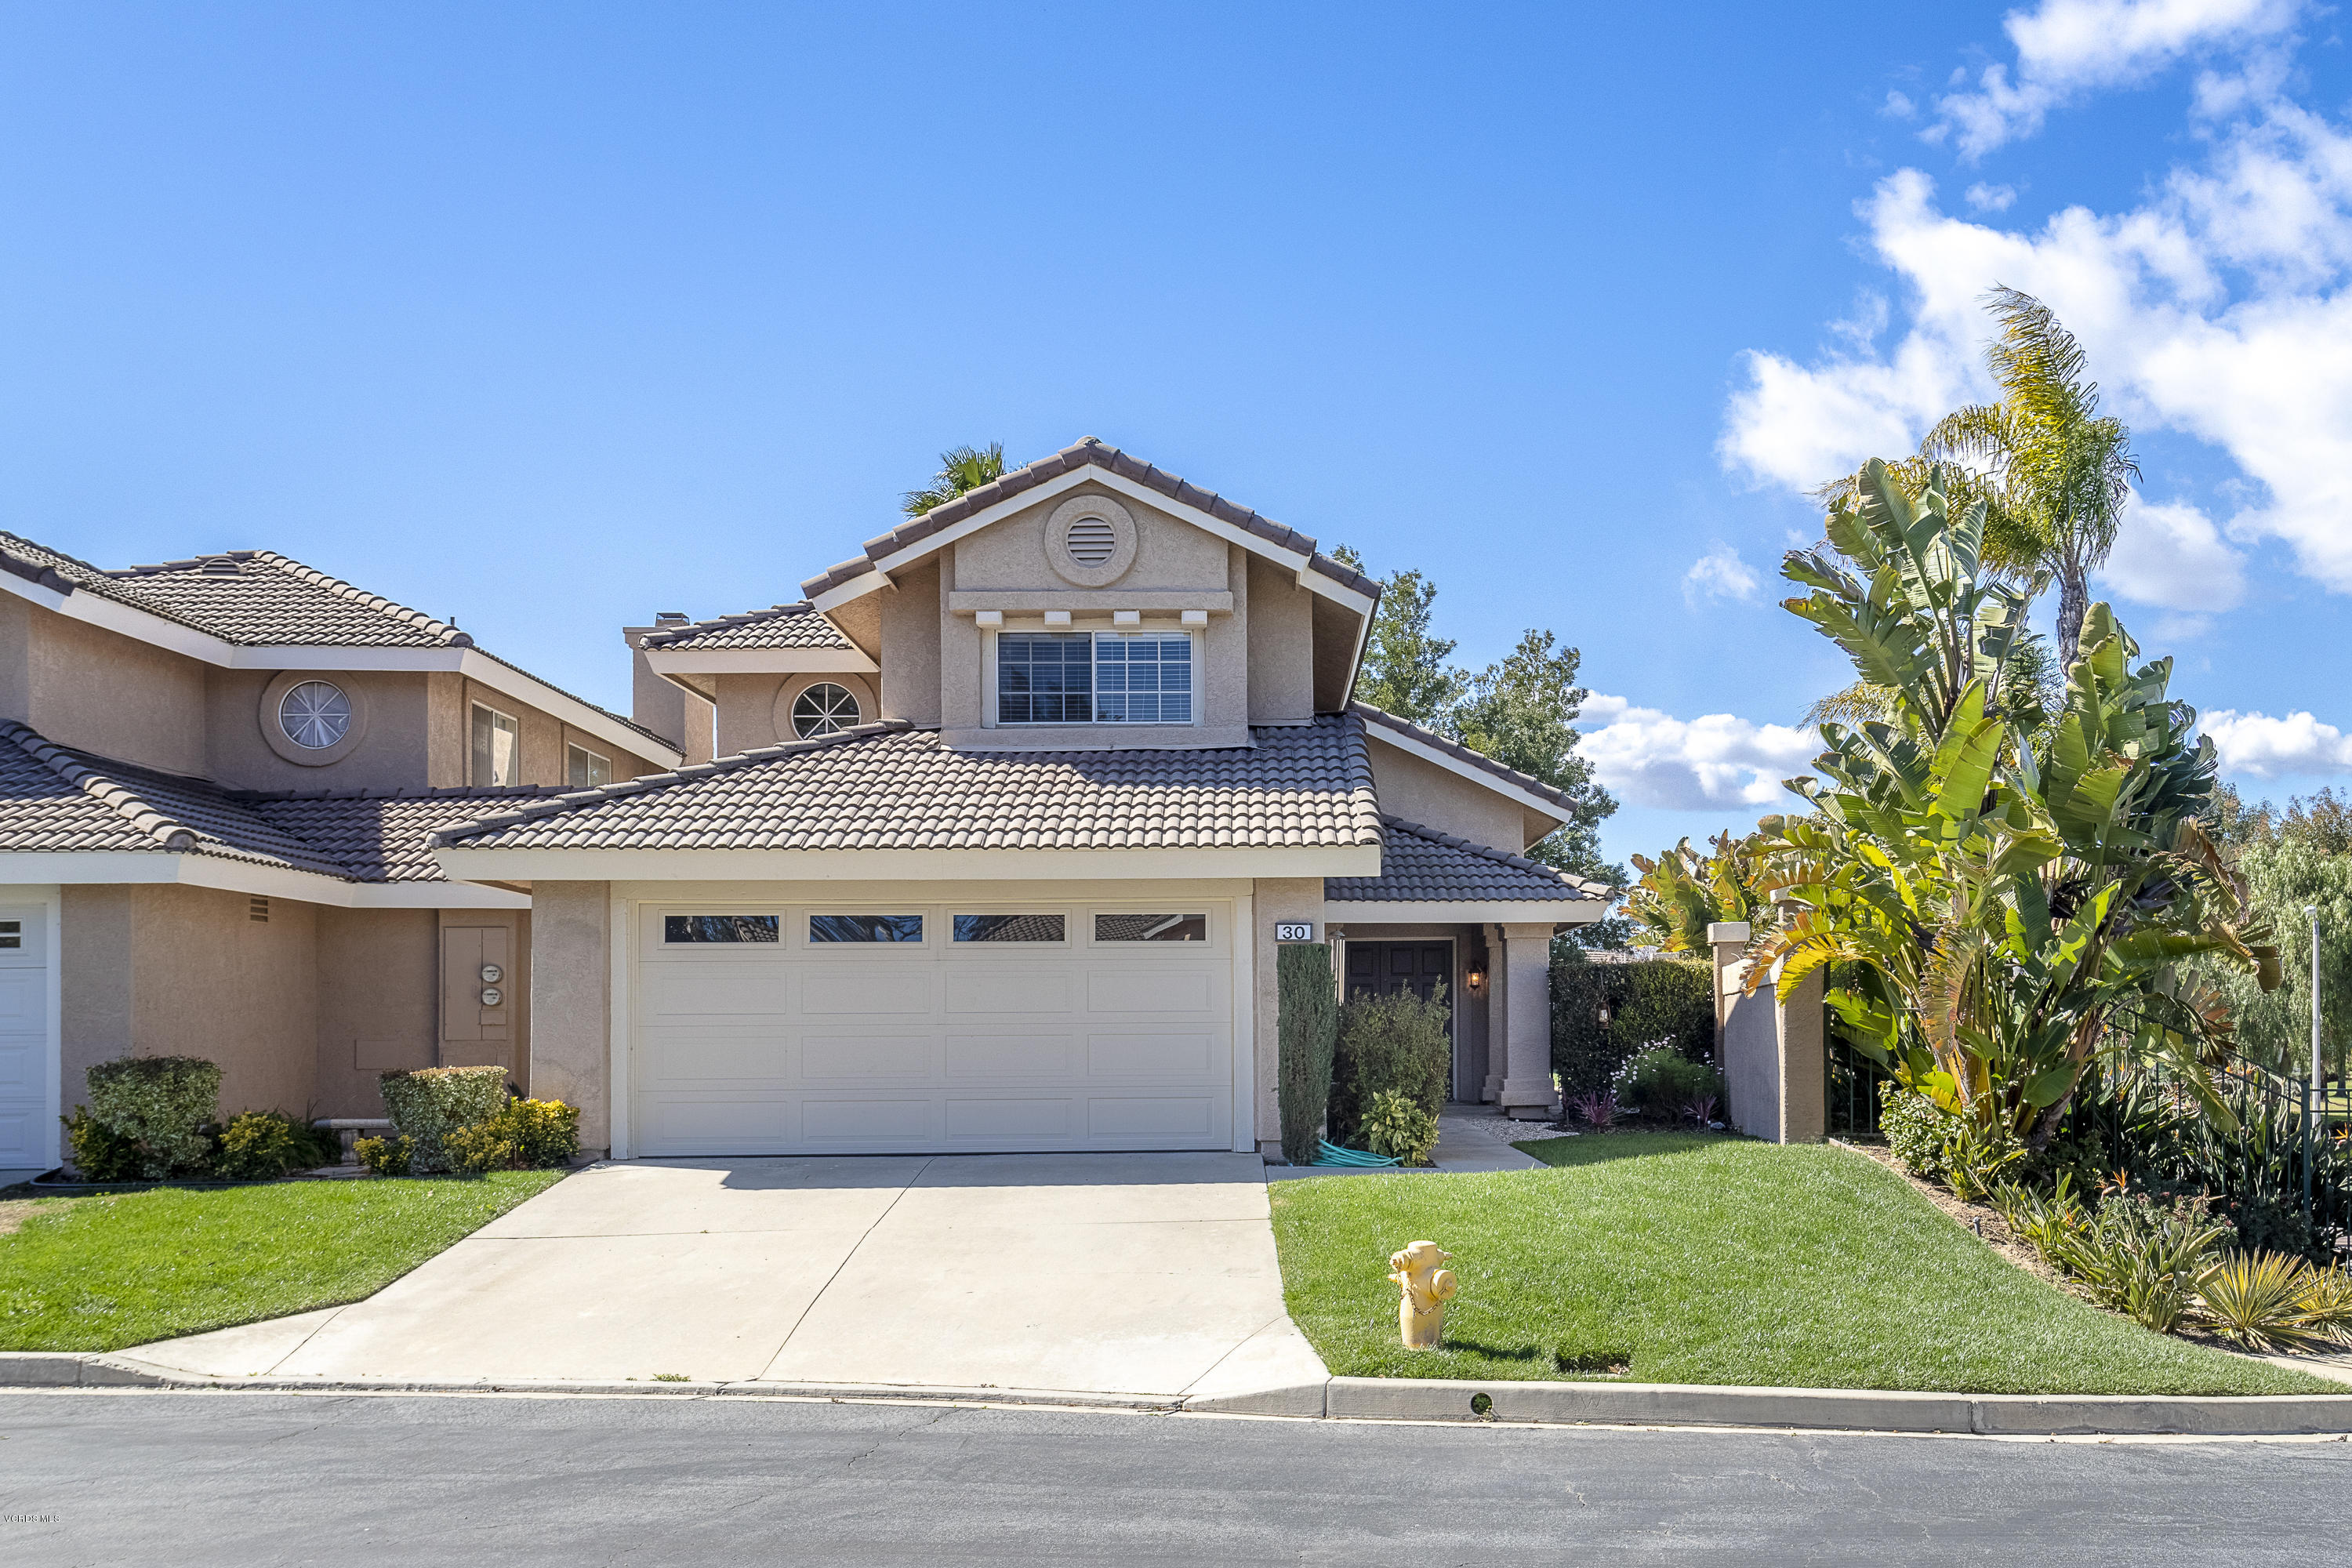 30 Iron Ridge Lane, Simi Valley, CA 93065